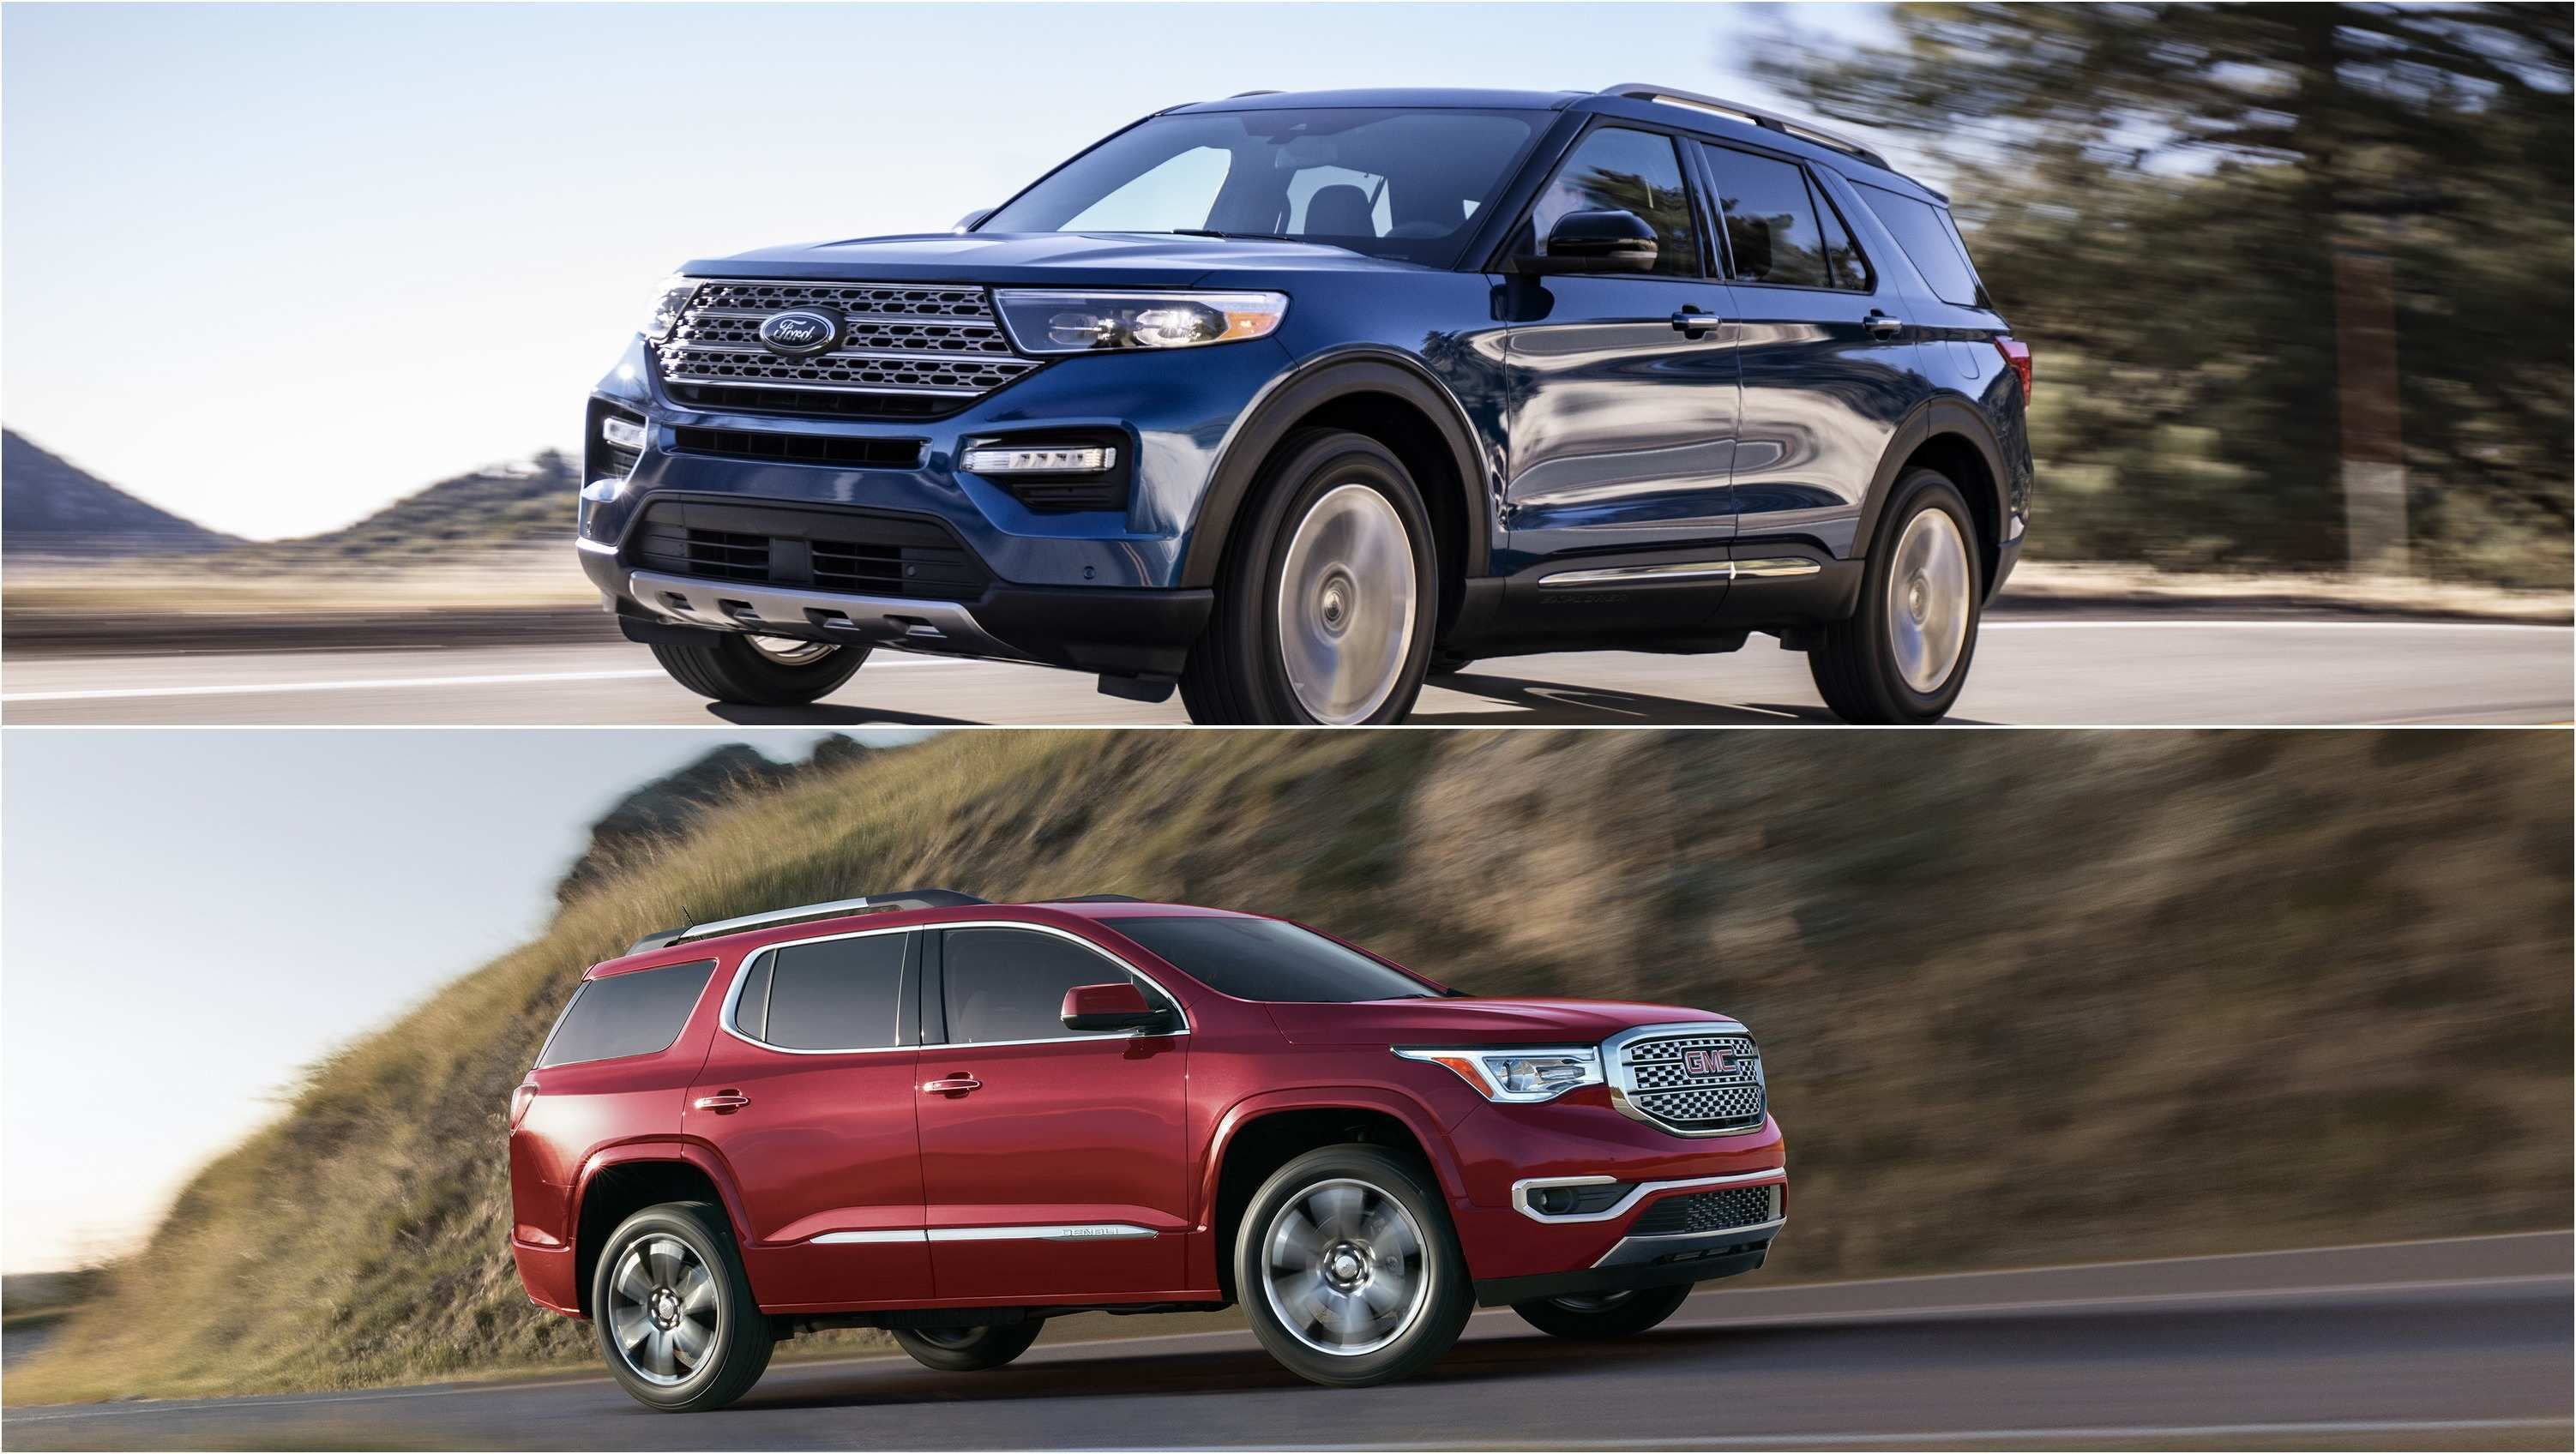 76 A Gmc 2019 Acadia Price And Release Date Price Design and Review